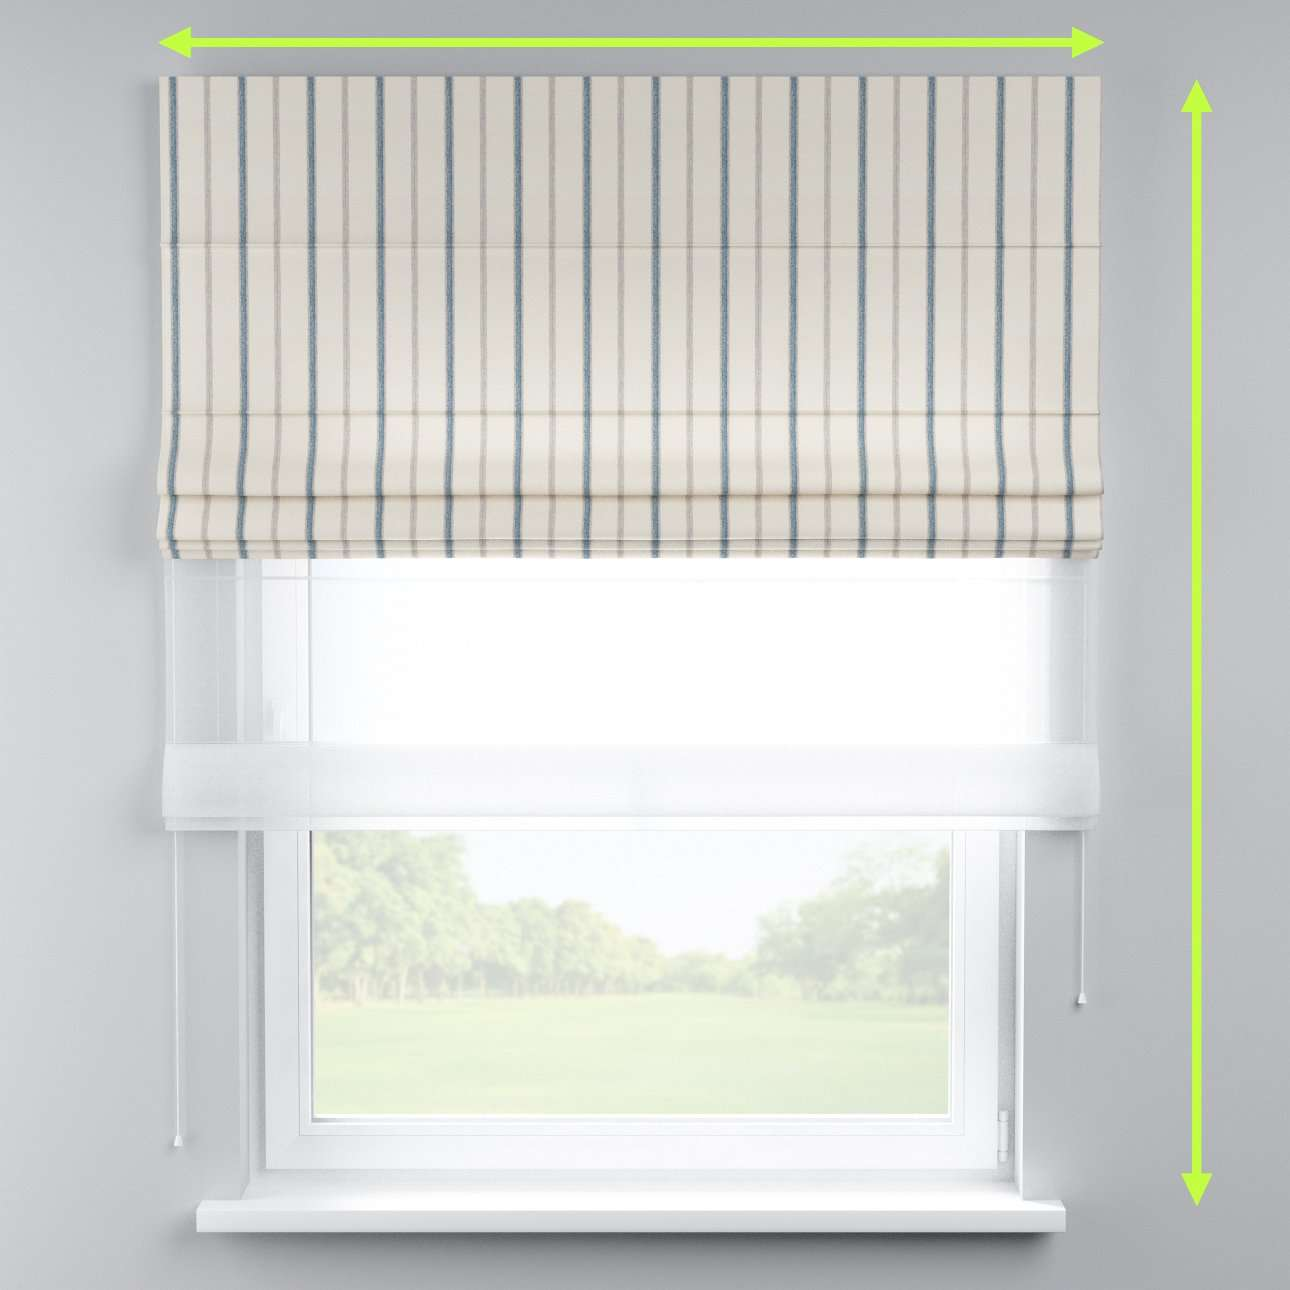 Voile and fabric roman blind (DUO II) in collection Avinon, fabric: 129-66